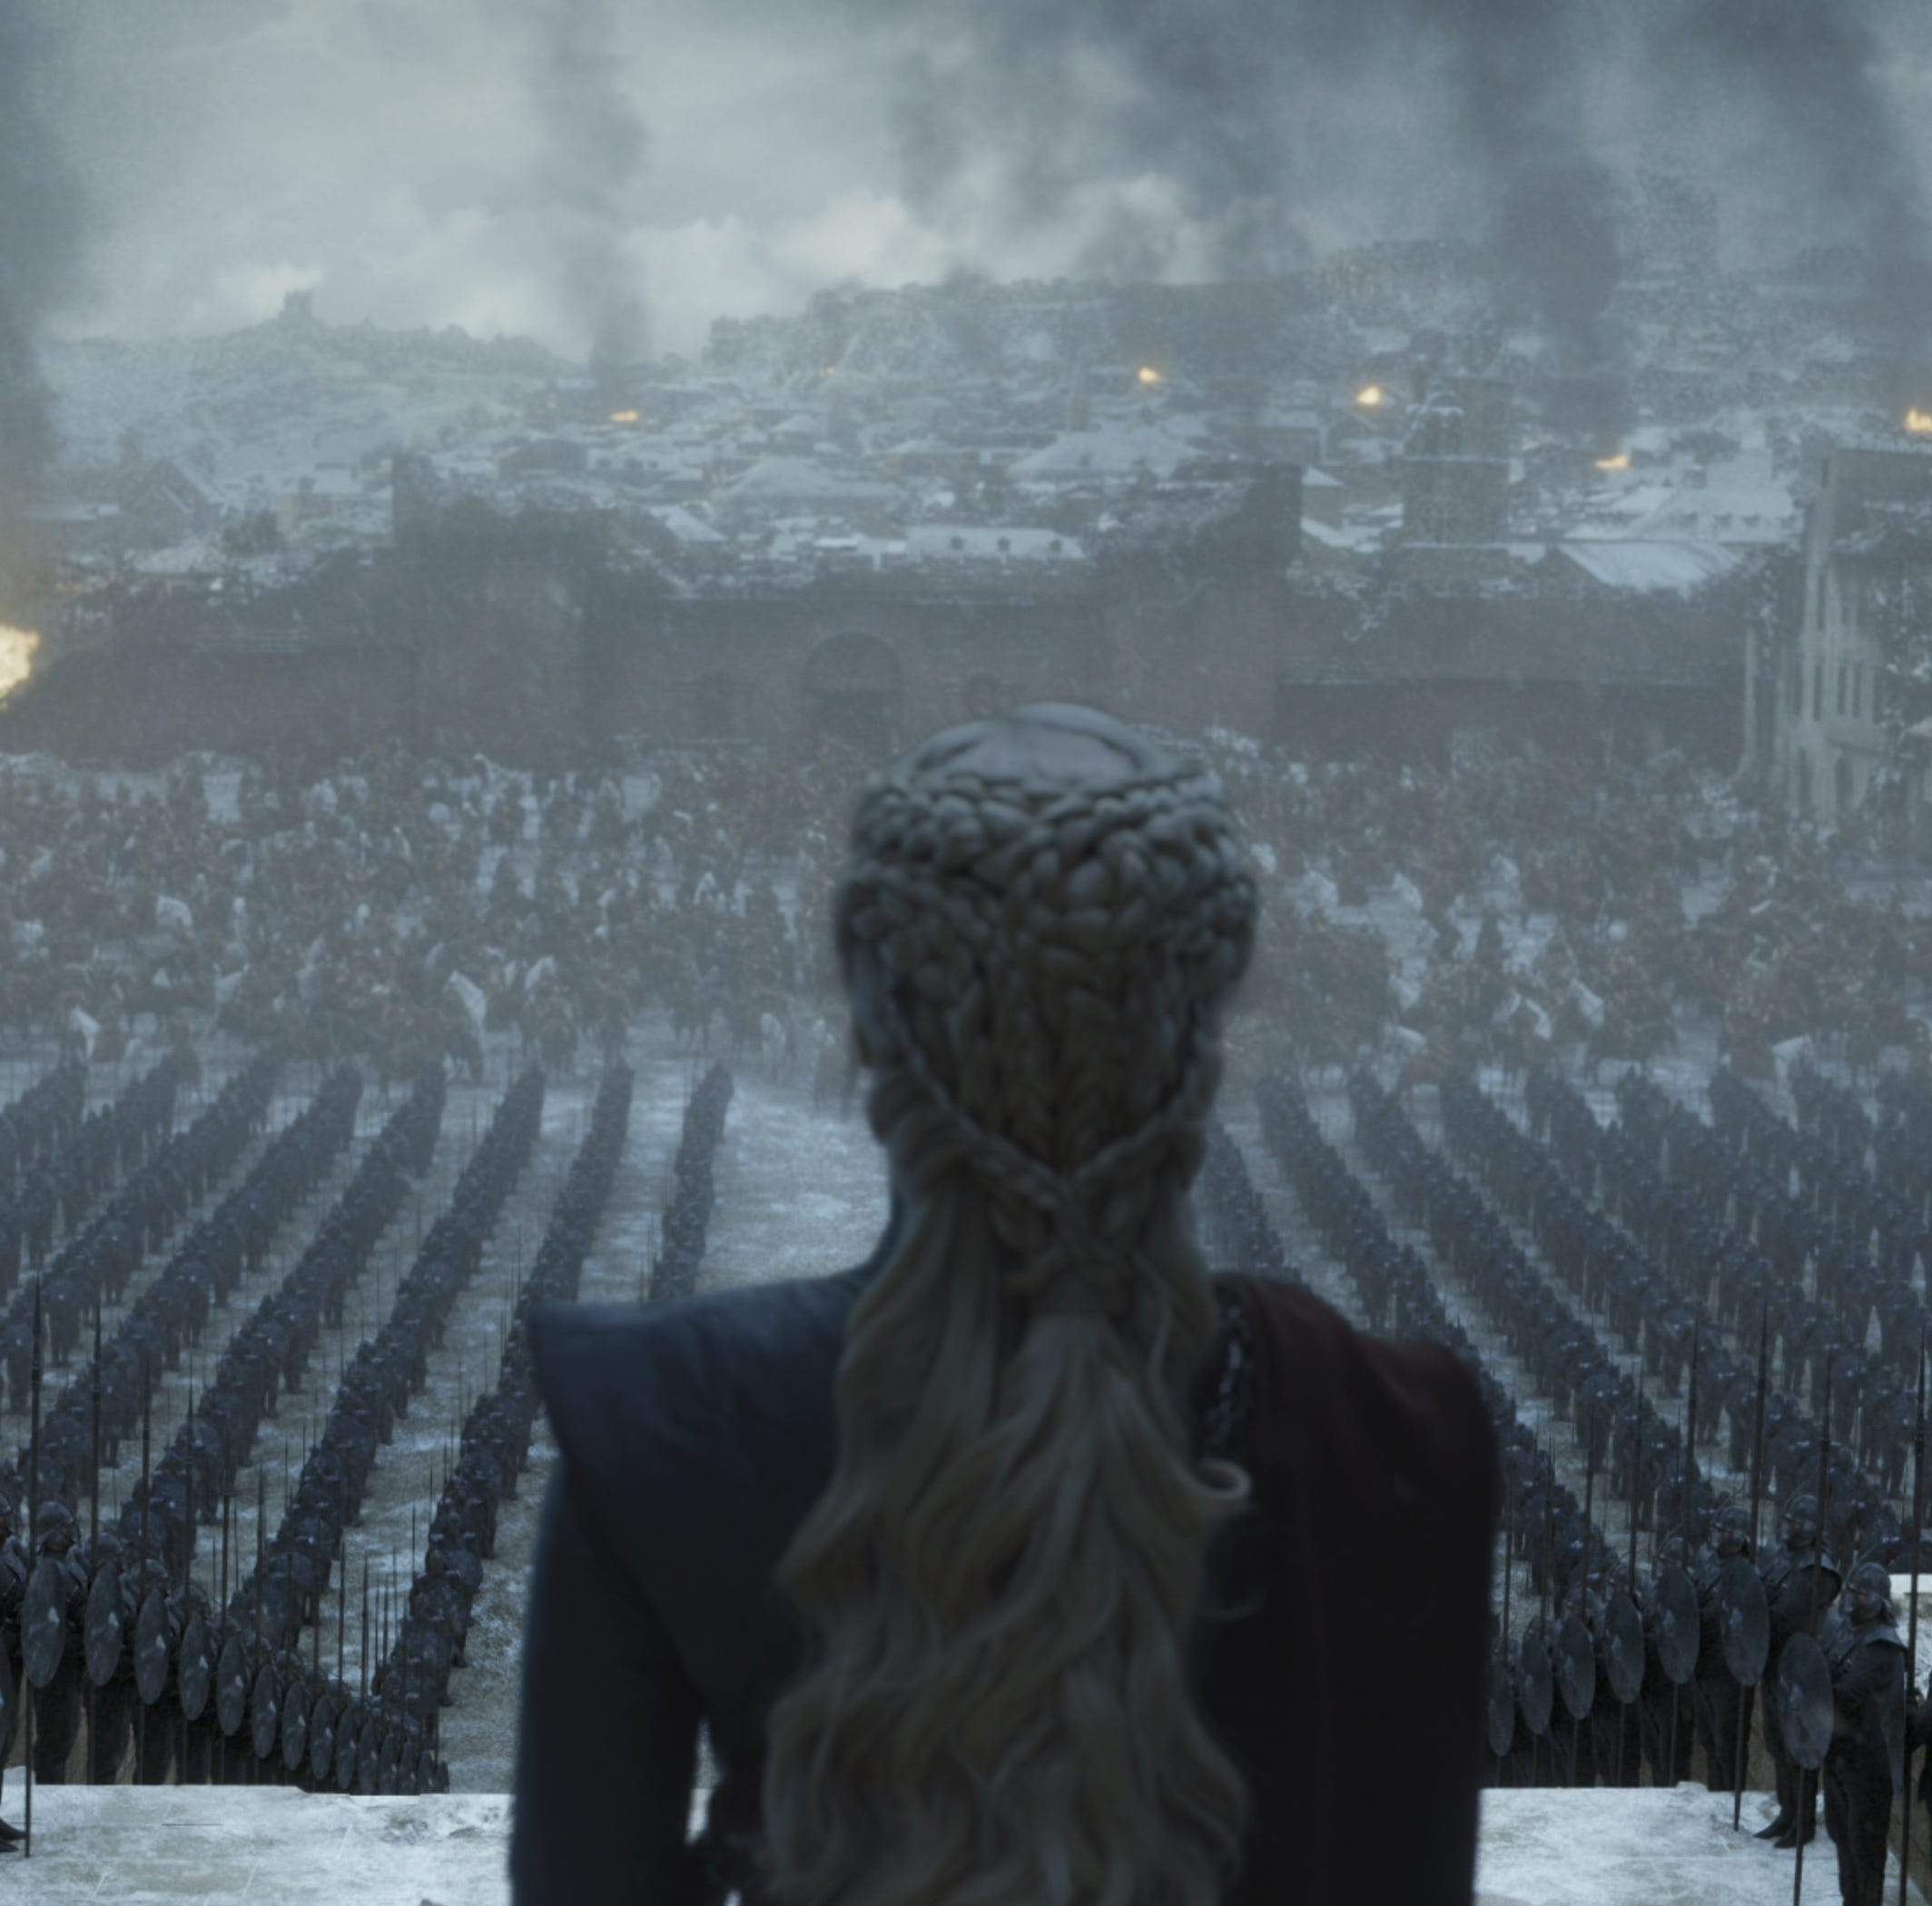 'Game of Thrones' finale: Top takeaways from the series ending